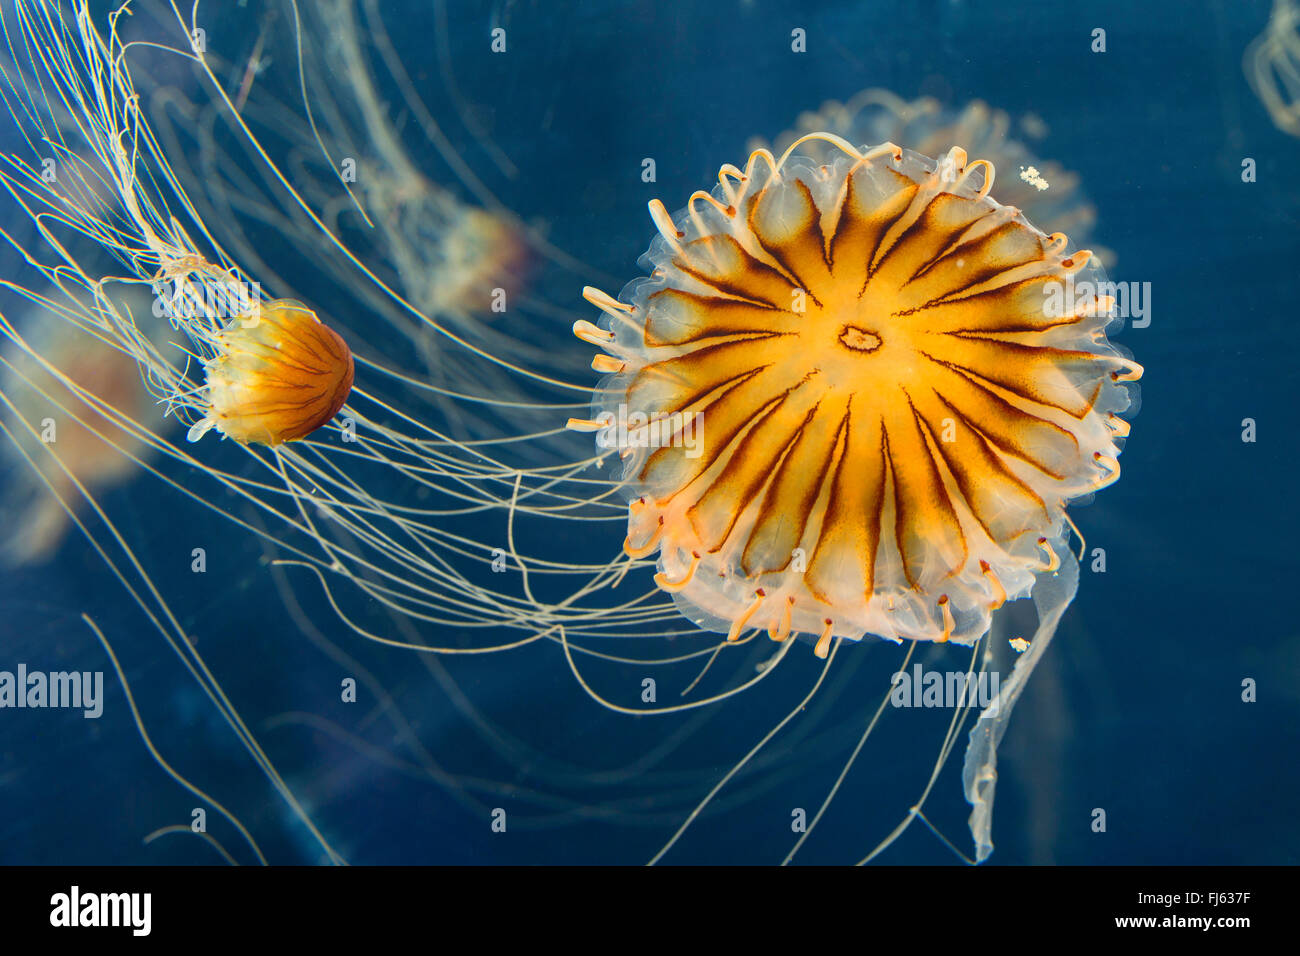 compass jellyfish, red-banded jellyfish (Chrysaora hysoscella), two compass jellyfishes - Stock Image